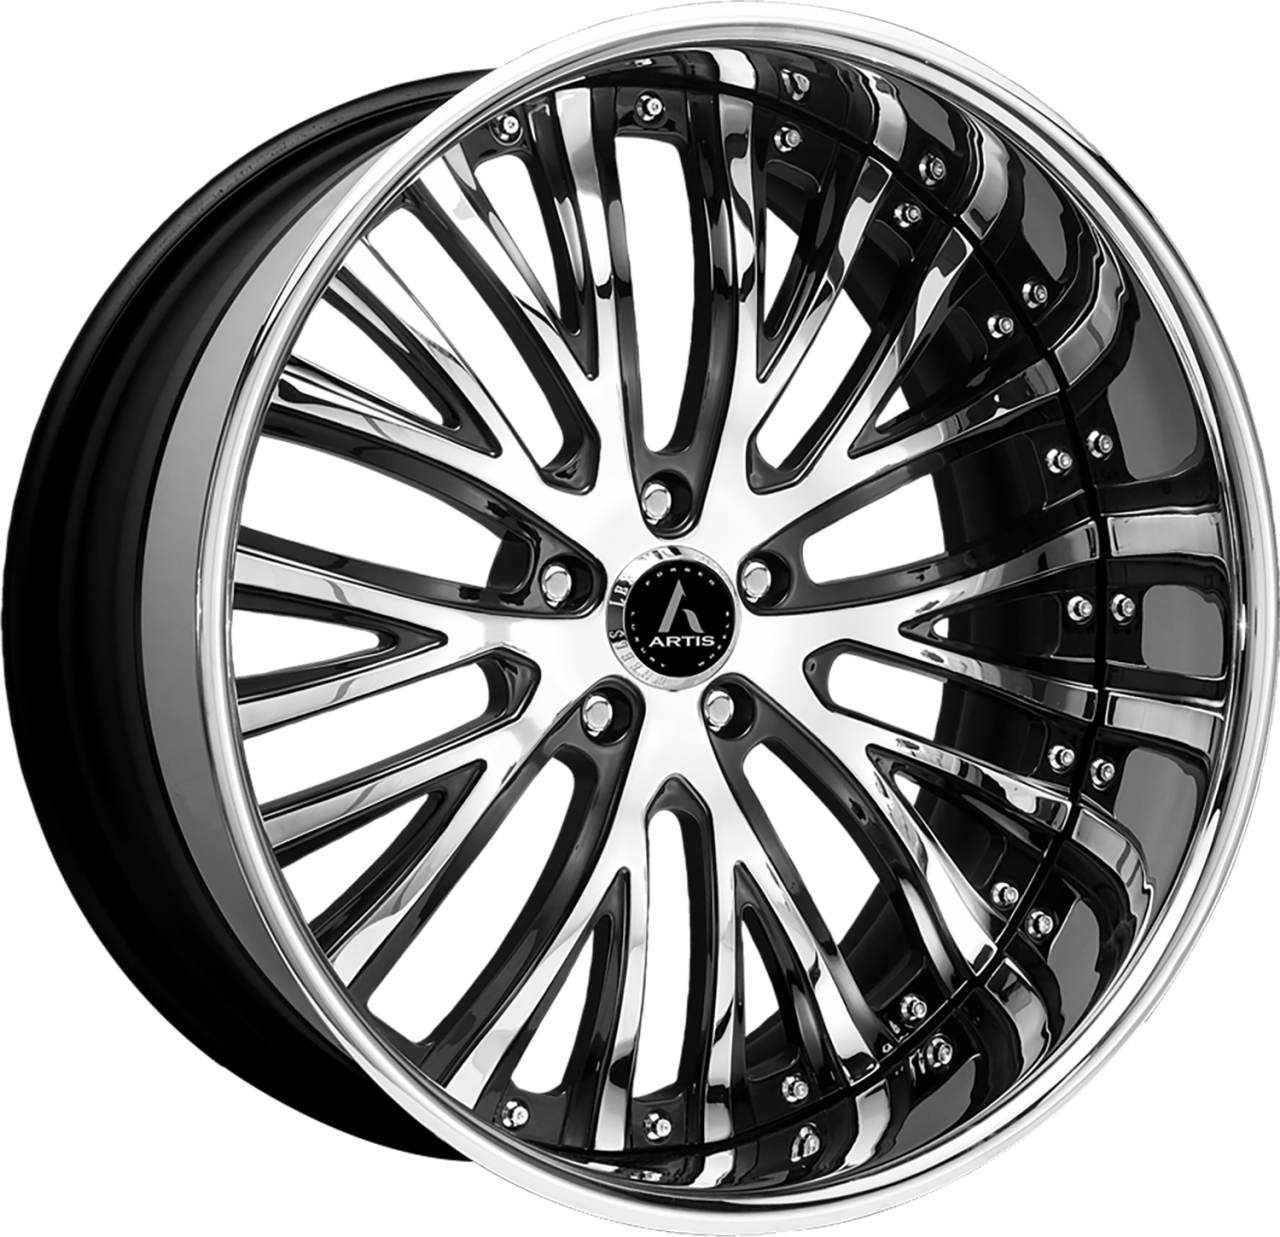 Artis Forged Woodward wheel with Custom Chrome and Black finish